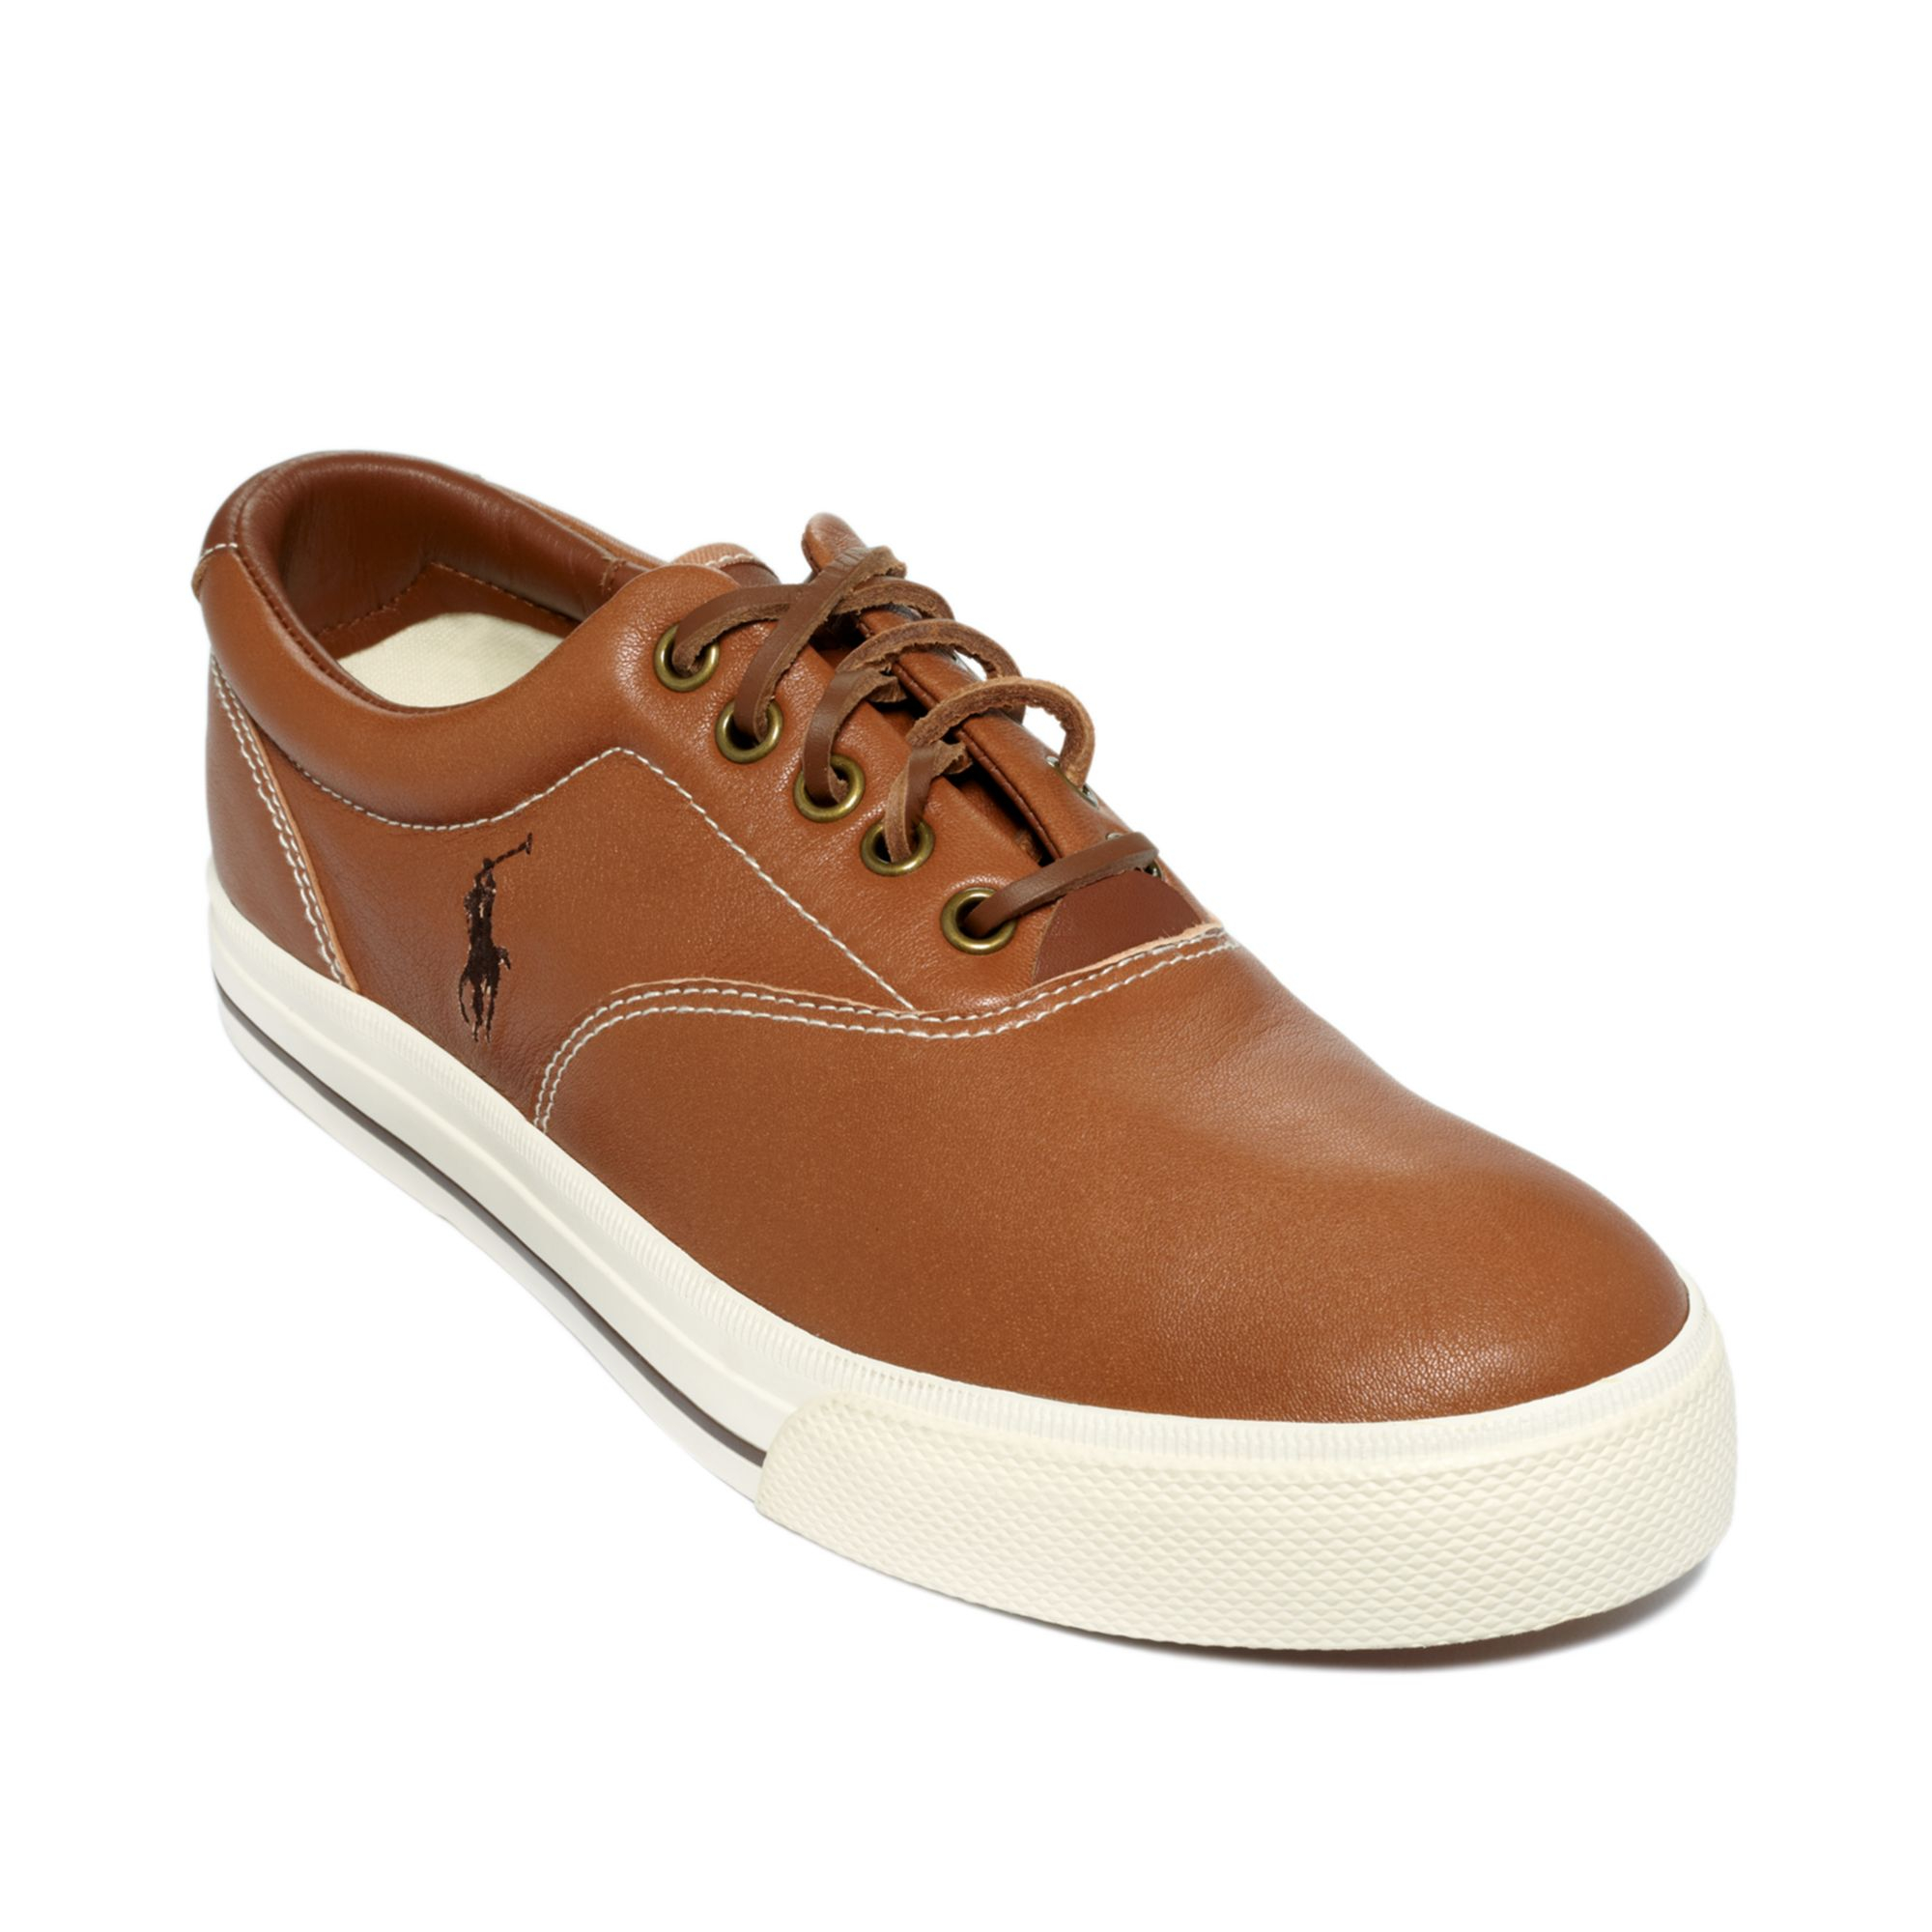 polo ralph lauren vaughn leather sneakers in brown for men tan. Black Bedroom Furniture Sets. Home Design Ideas